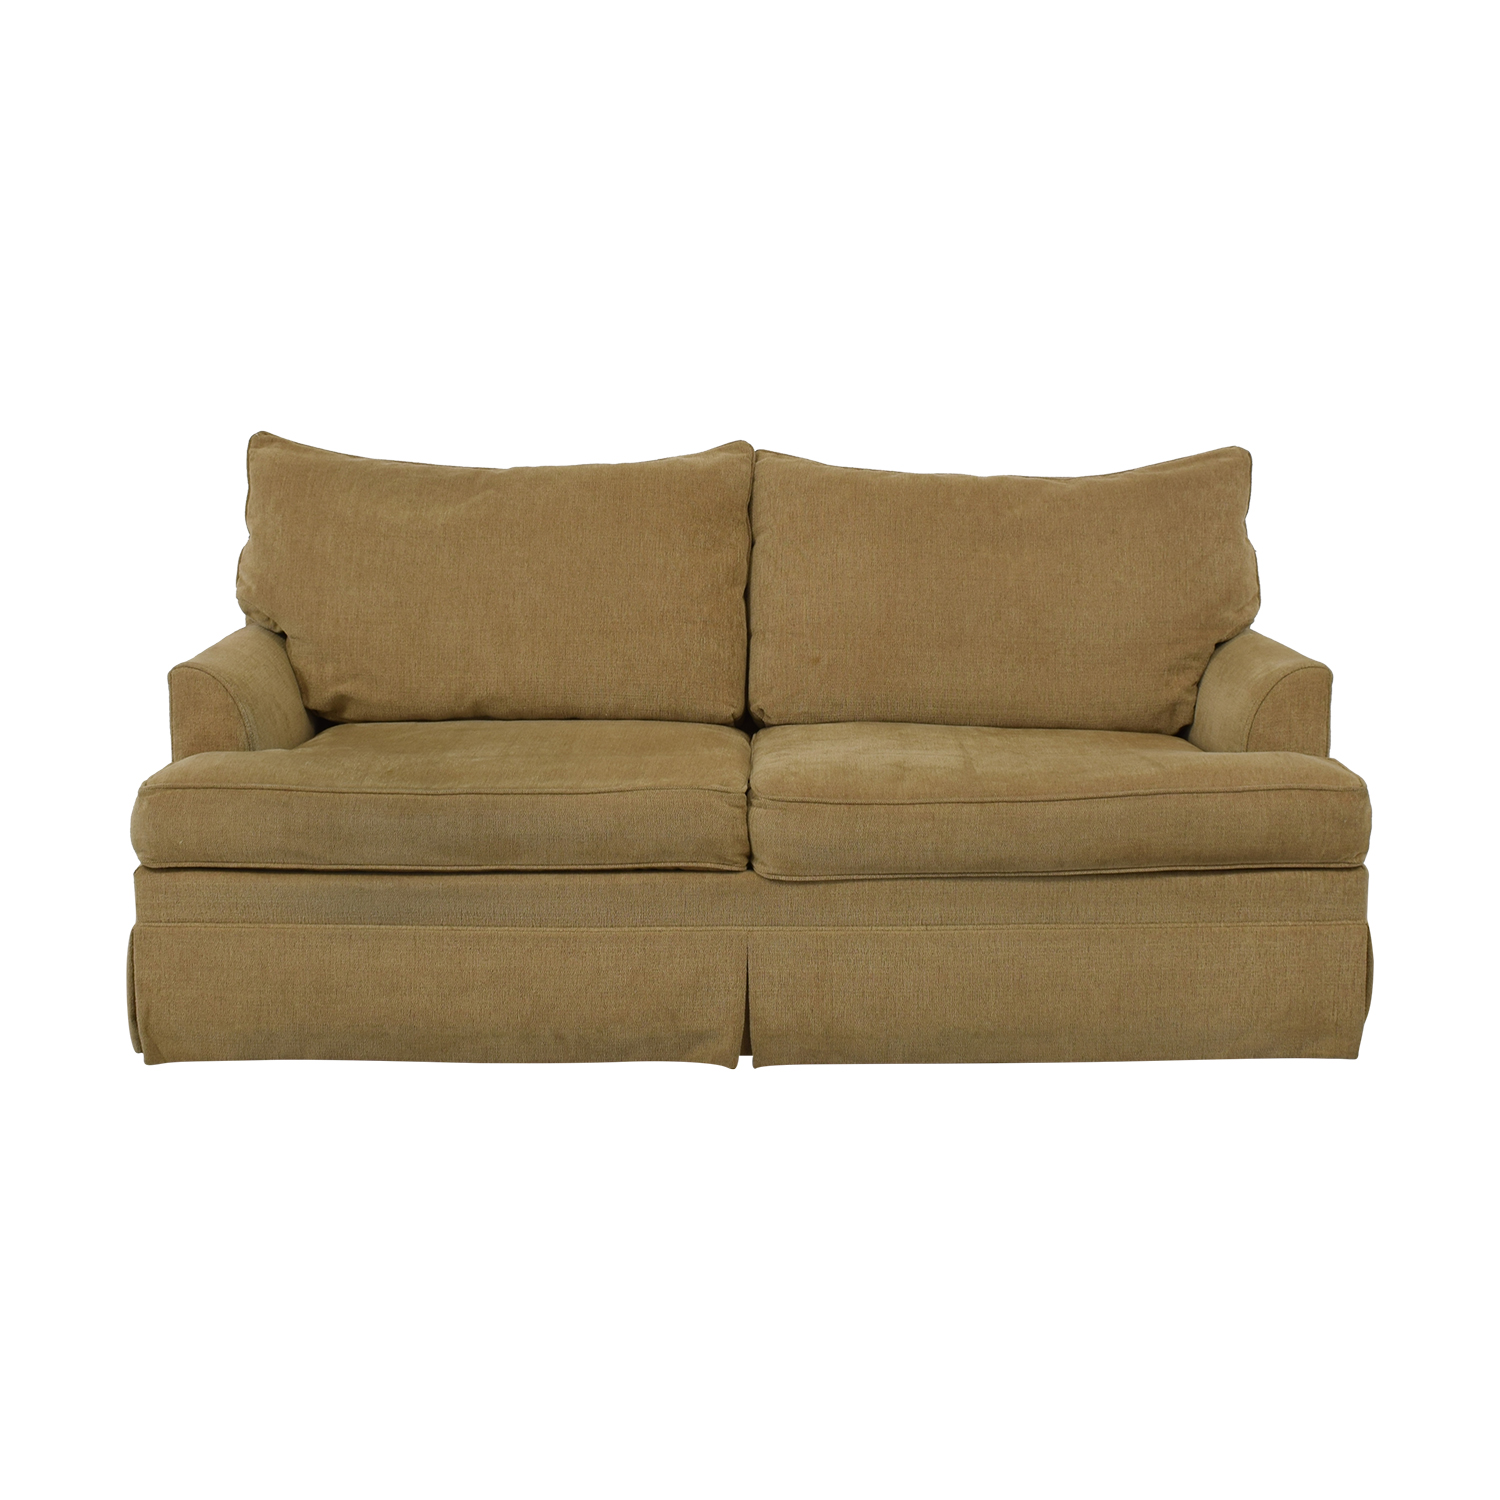 Ethan Allen Ethan Allen Two Cushion Sofa price